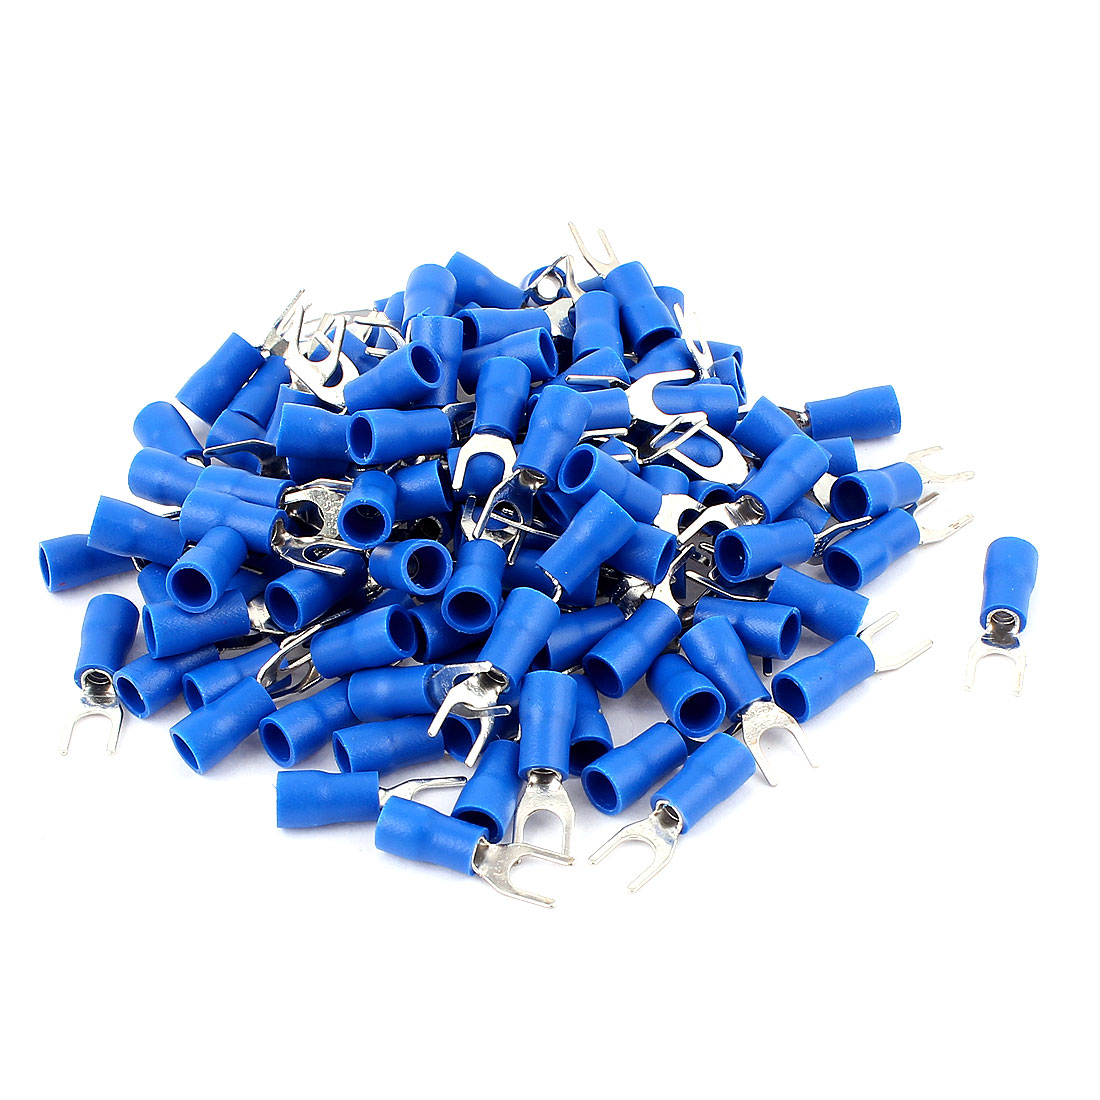 125Pcs Blue Electrical Crimp Wire Connector Insulated Fork Terminals 16-14AWG